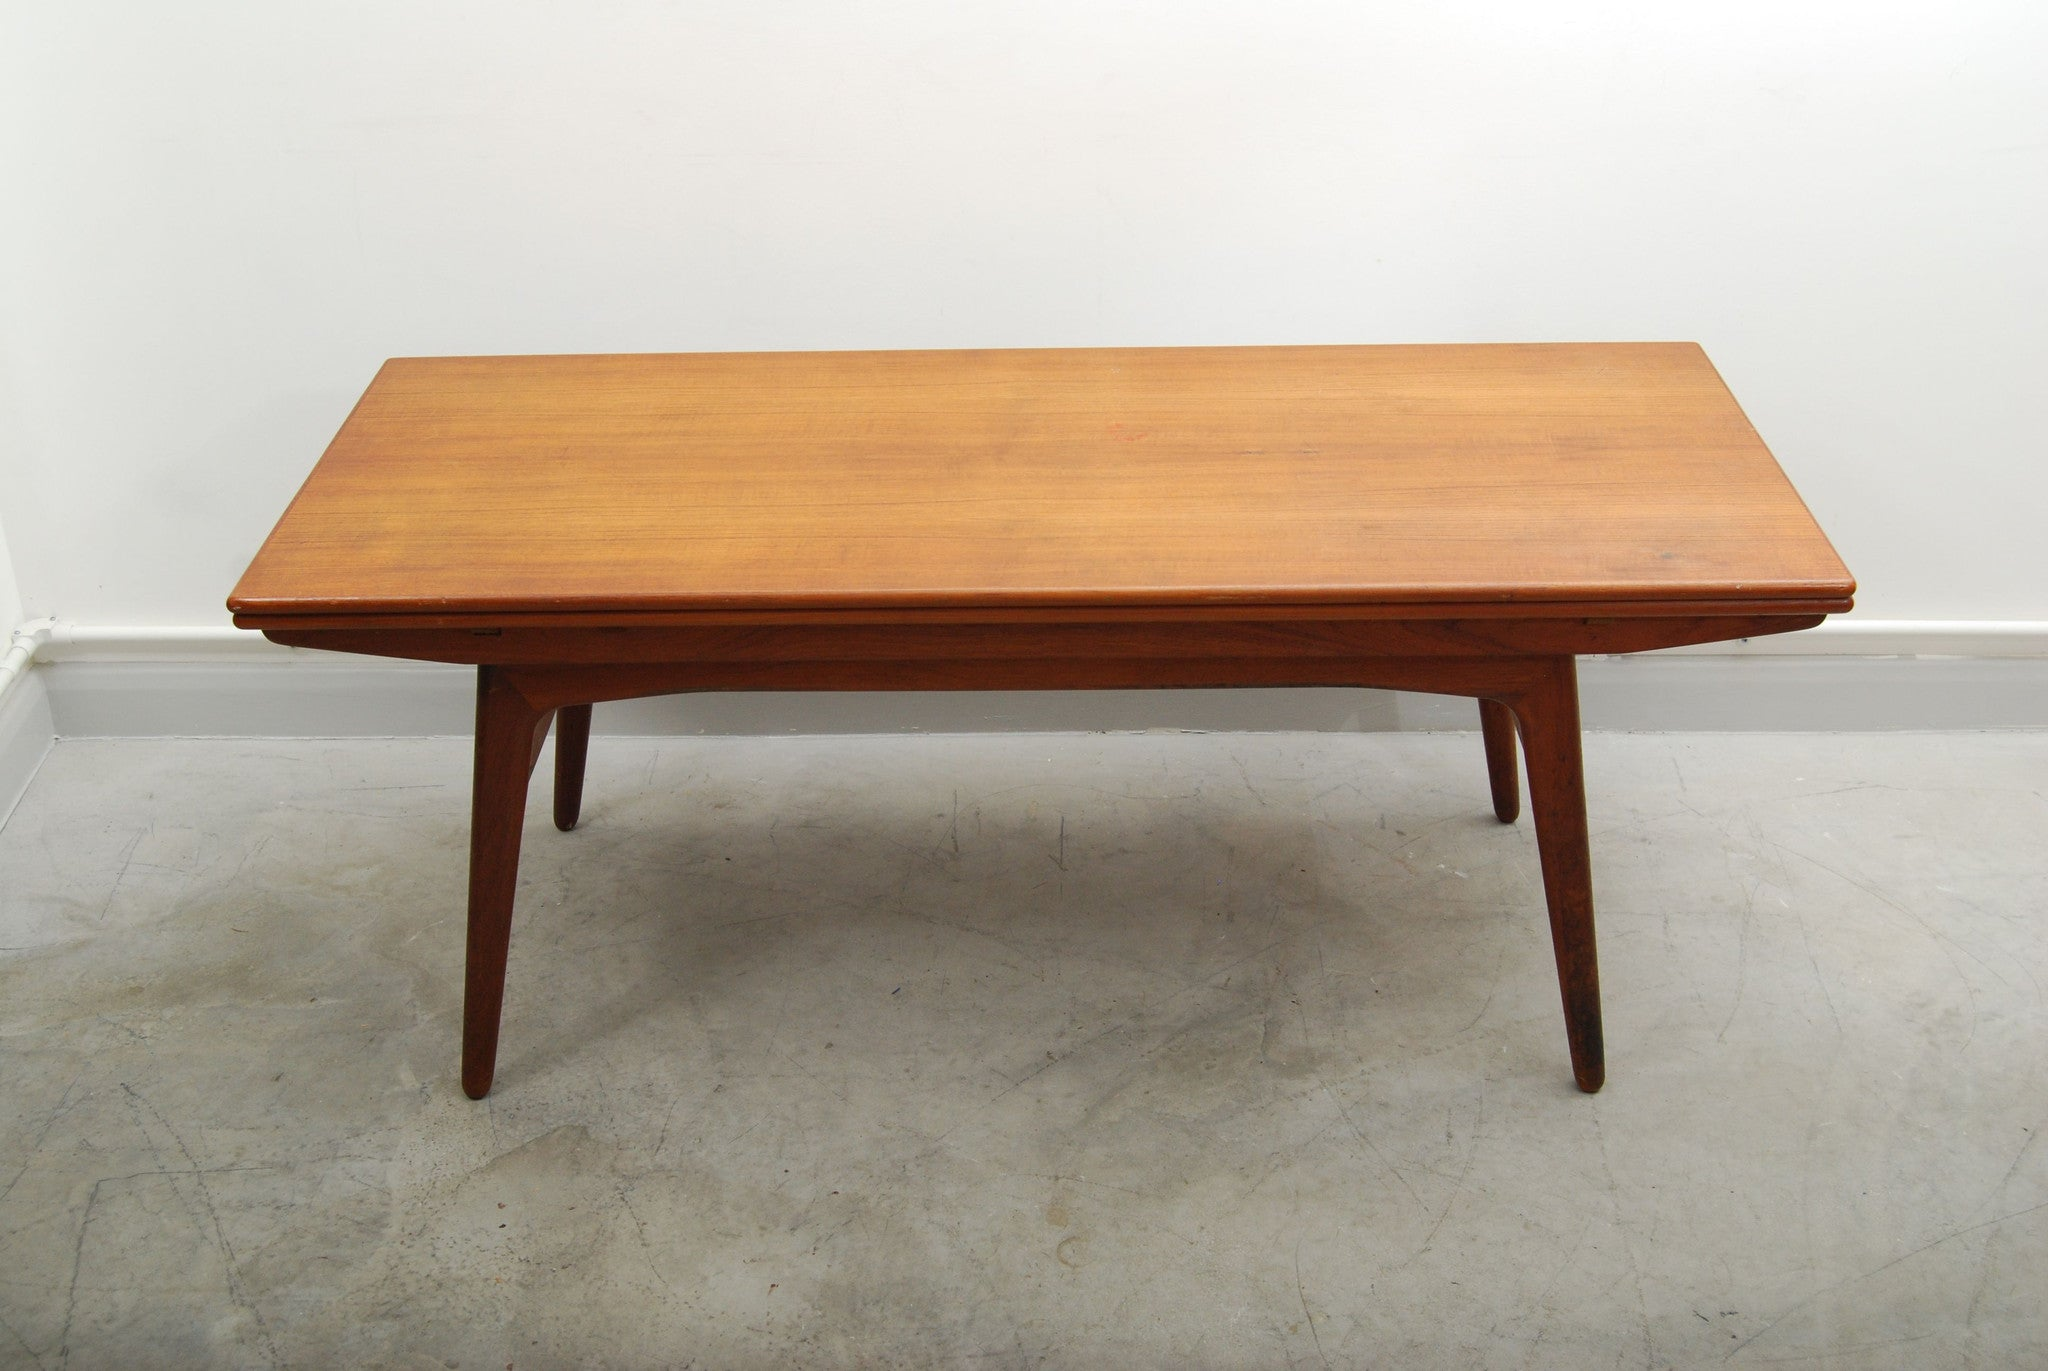 Chase & Sorensen Coffee table/dining table